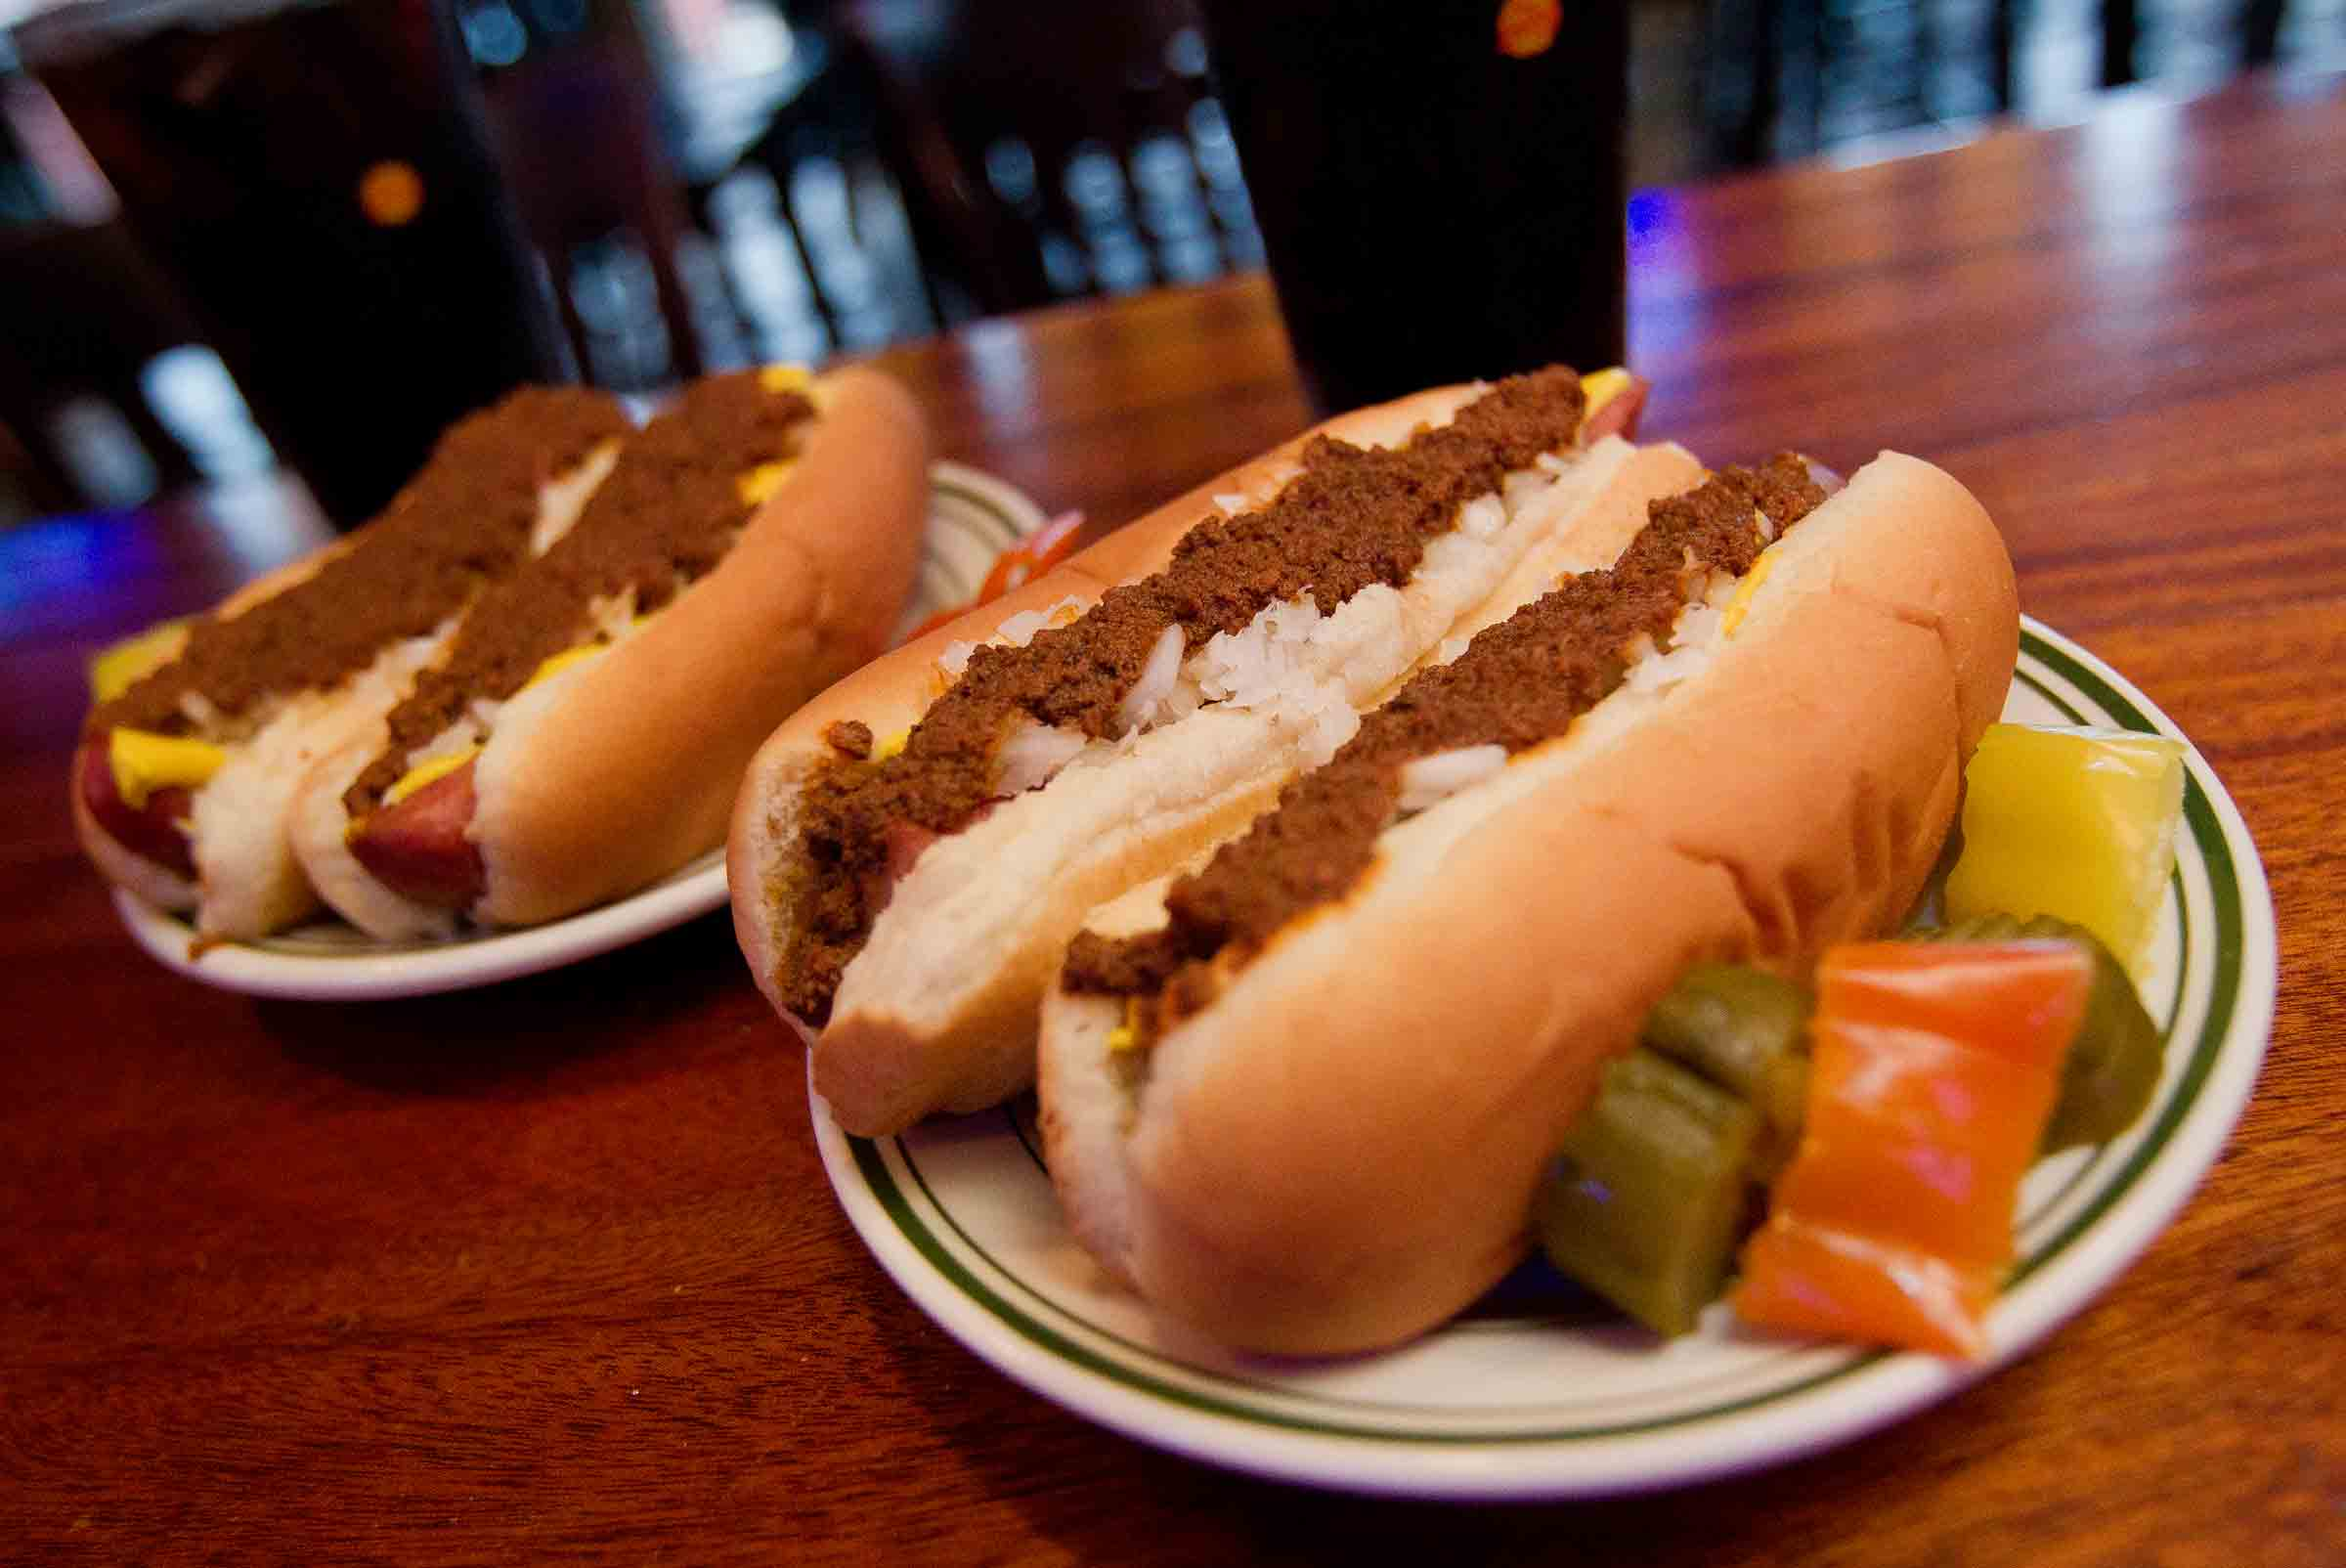 Two Hungarian Chili Hot Dogs at Tony Packos Cafe